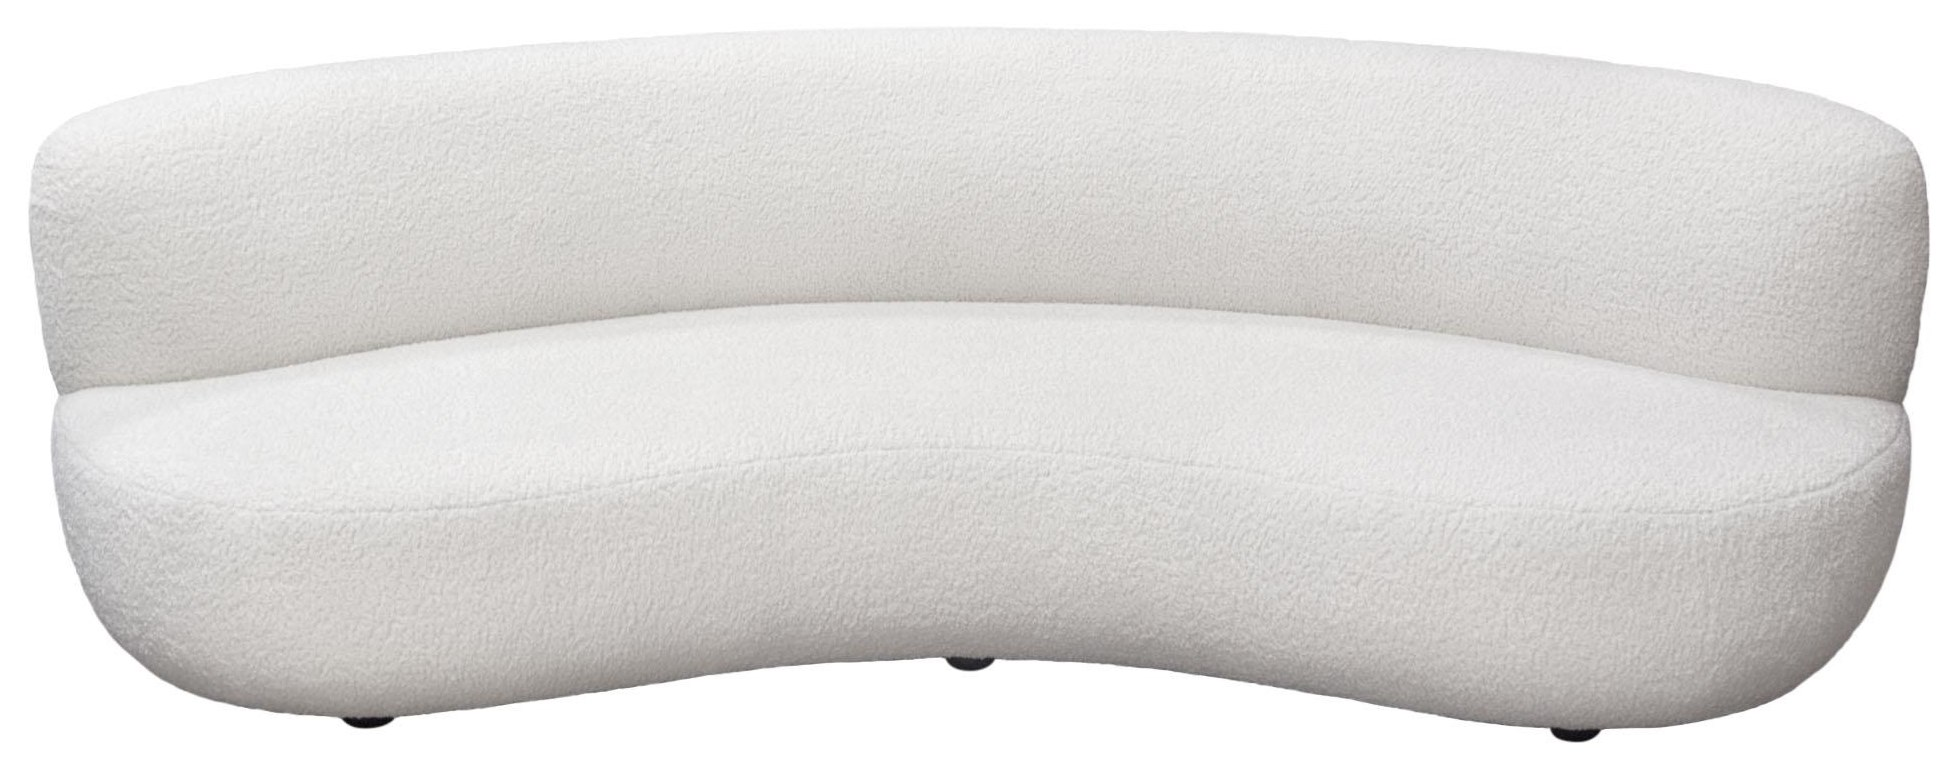 Simone Sofa by Diamond Sofa at Red Knot